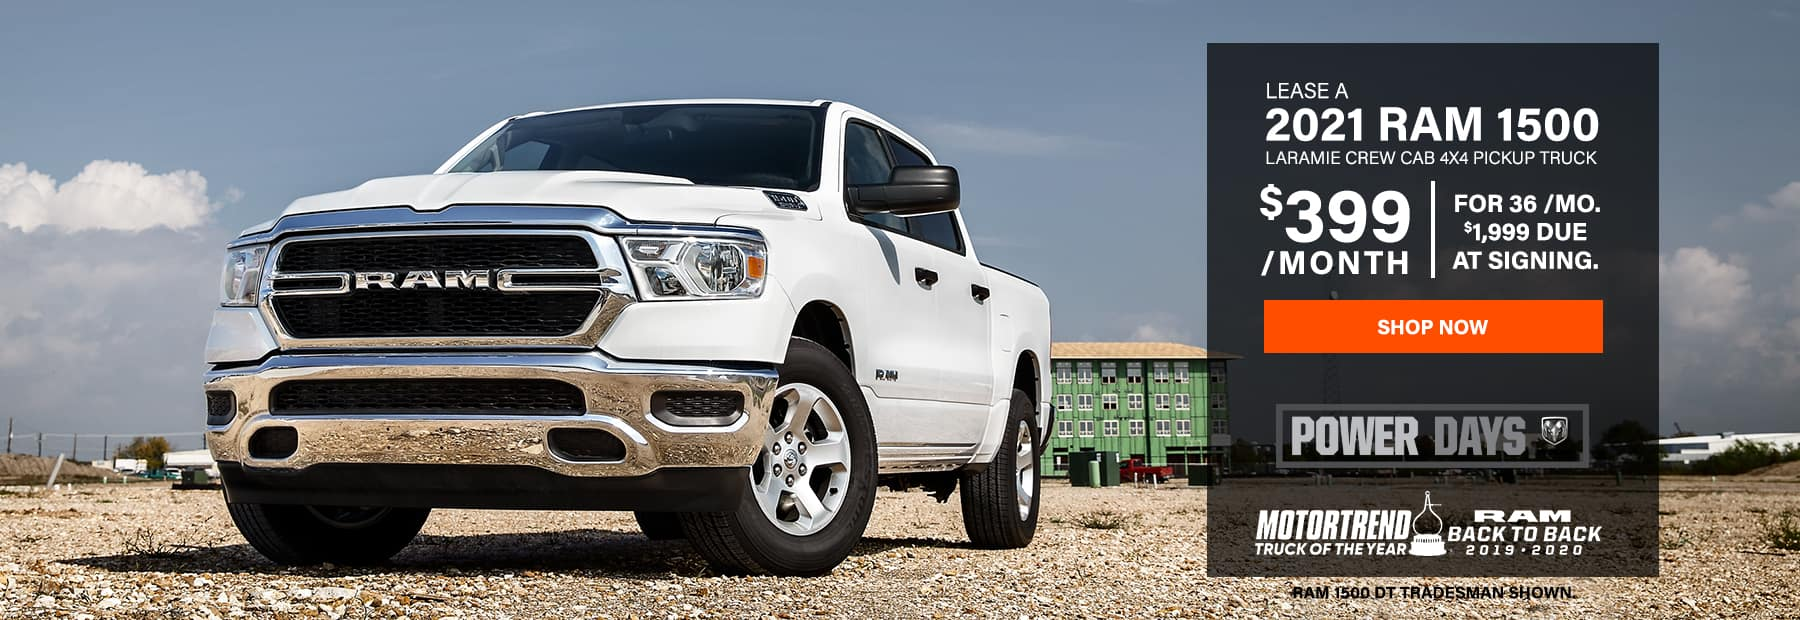 Lease a 2021 Ram 1500 Laramie Crew Cab 4x4 Pickup Truck for $399/mo. for 36 mos. with $1,999 down